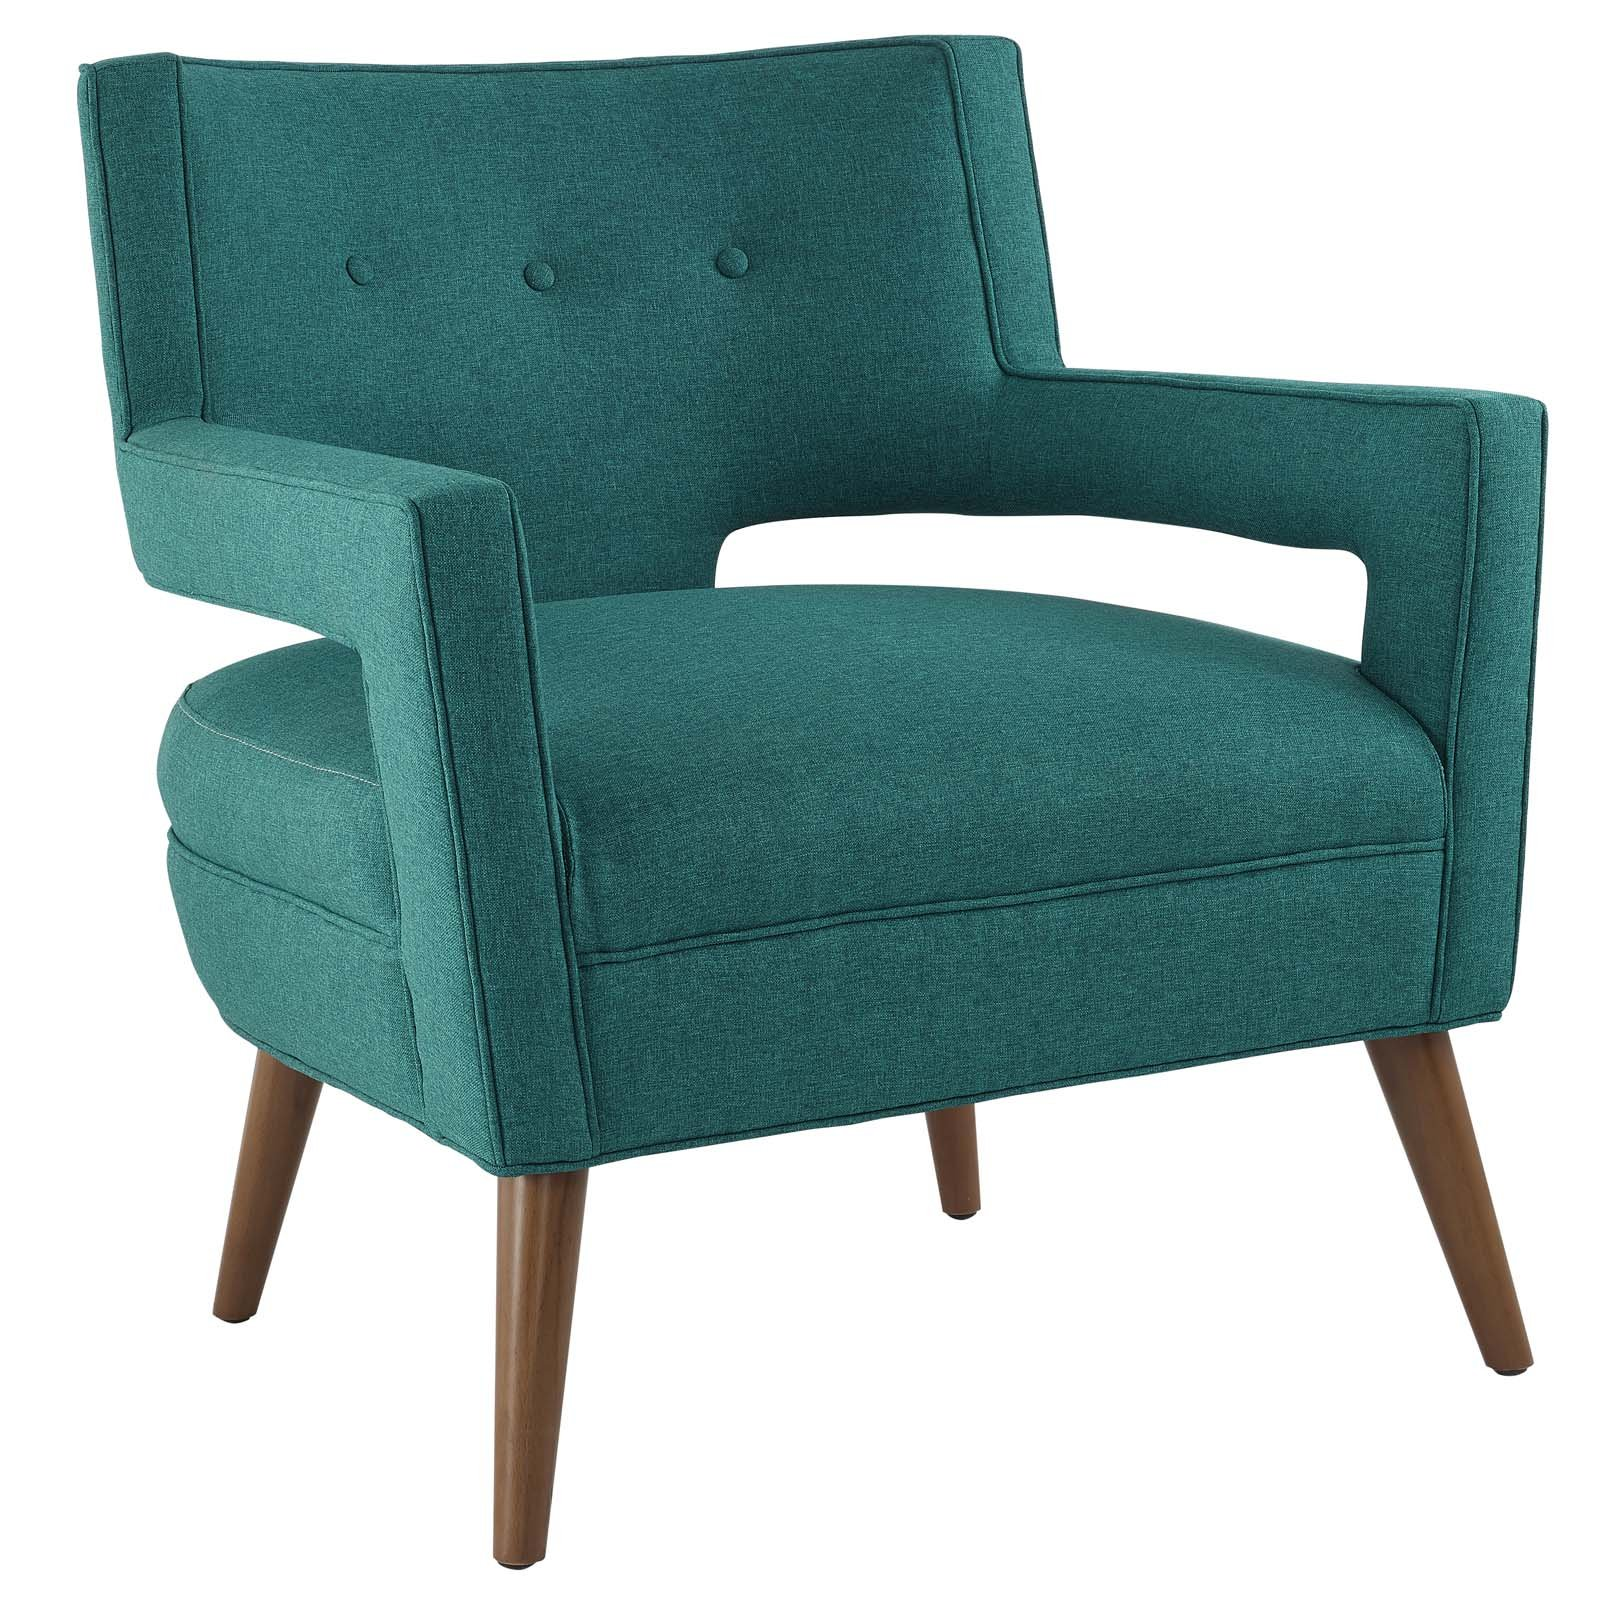 Modway Sheer Upholstered Fabric Mid-Century Modern Accent Lounge Arm Chair in Teal by Modway